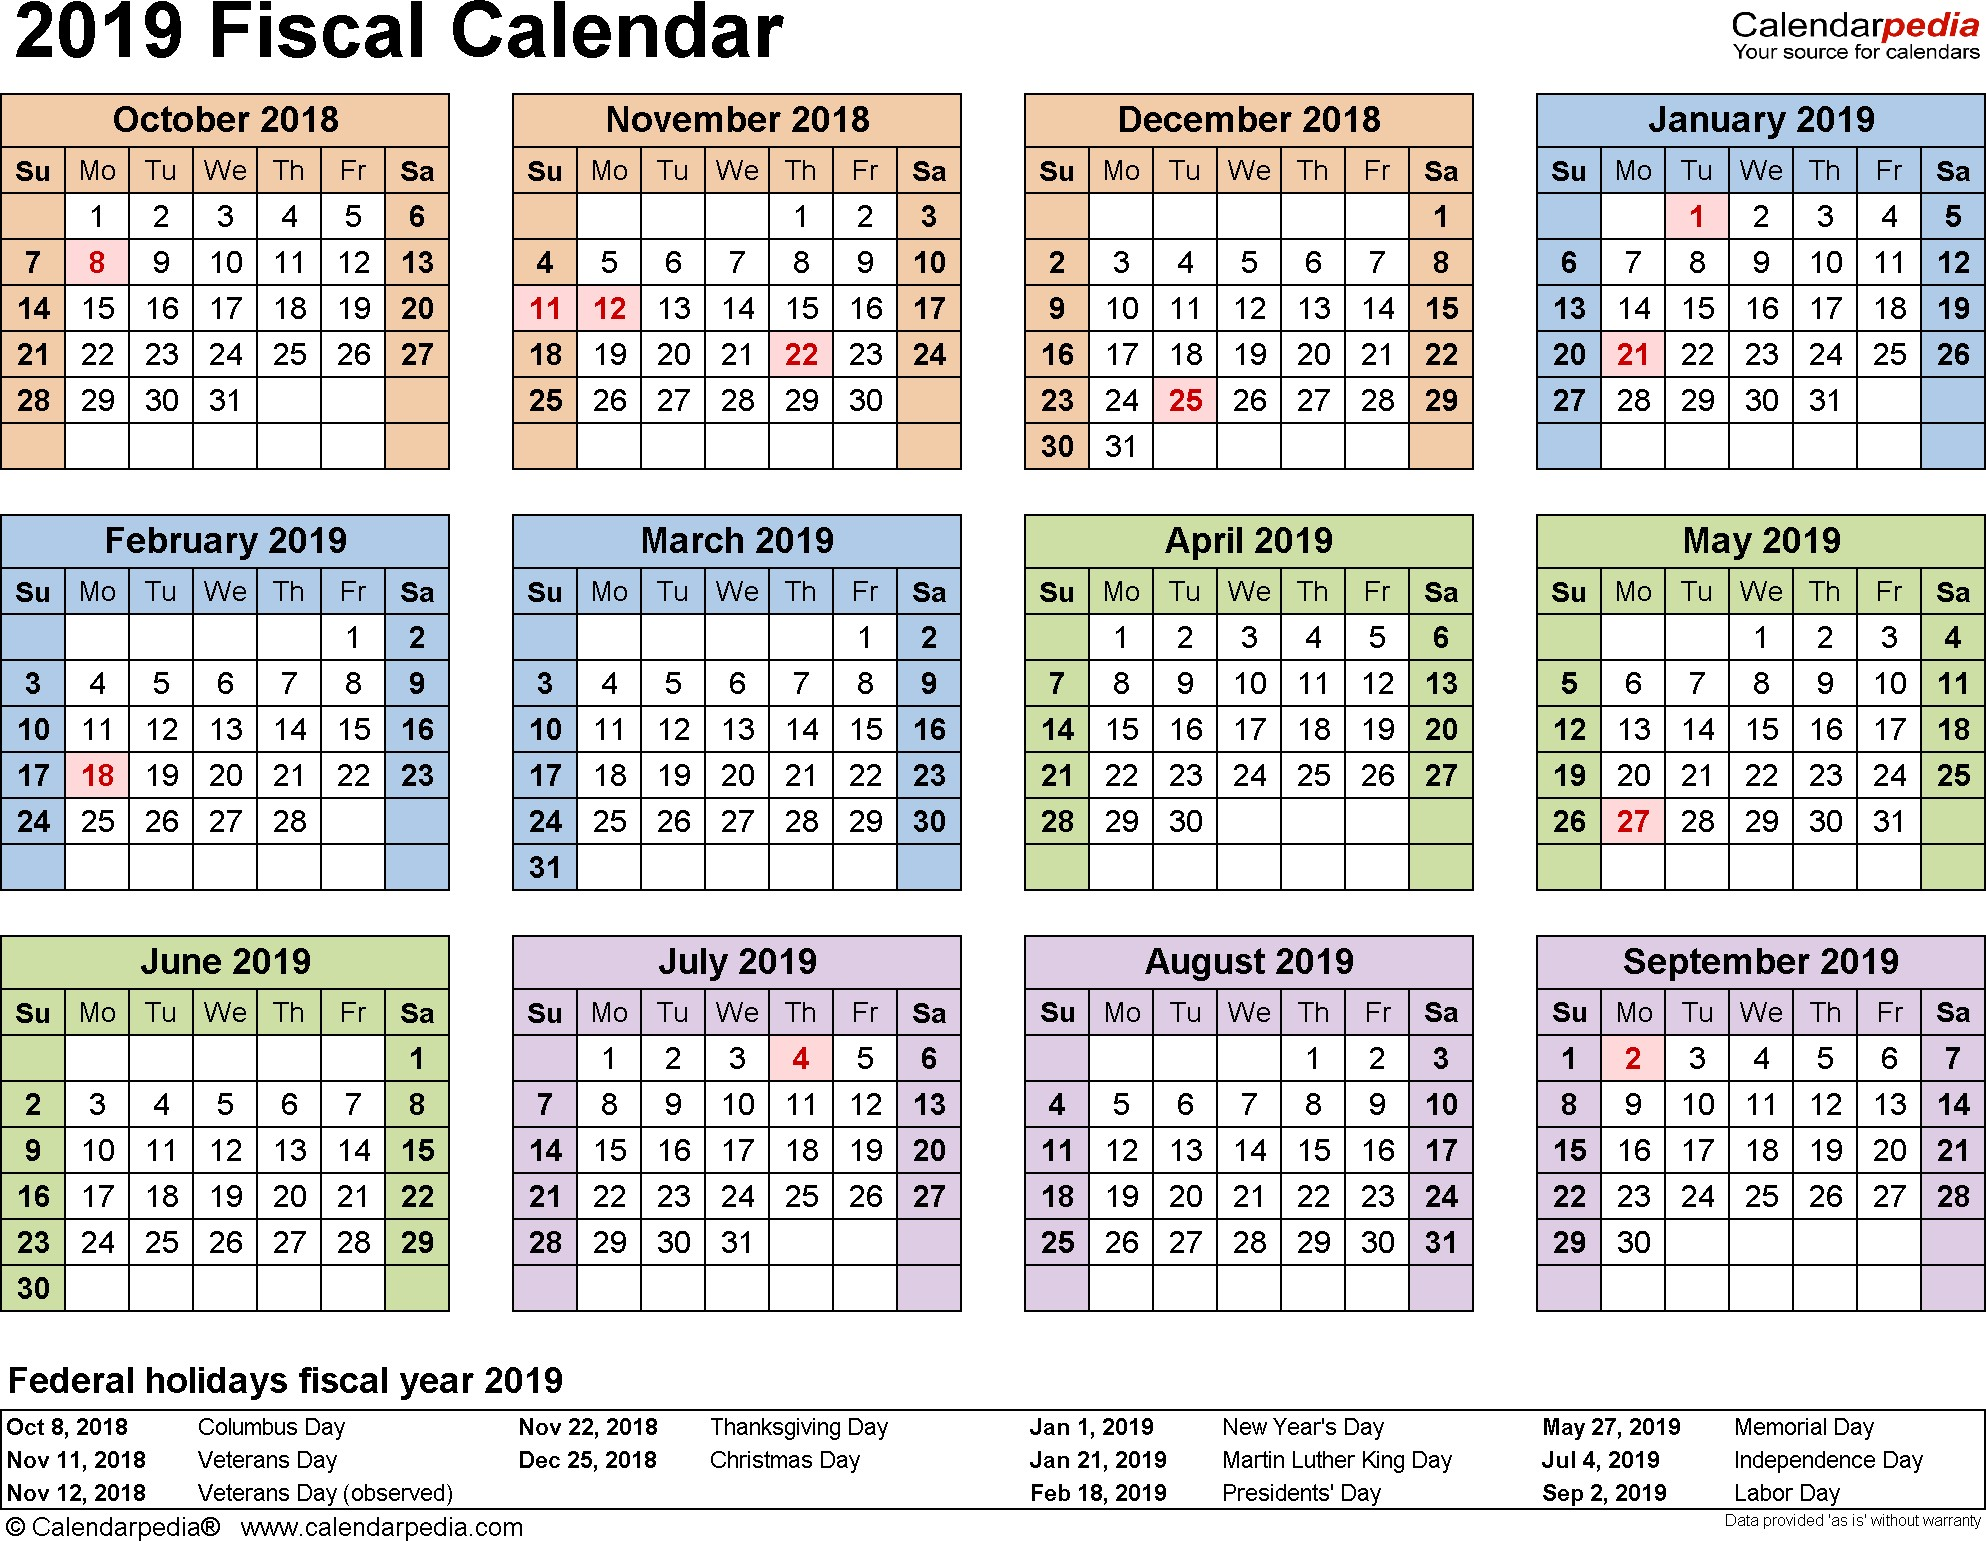 National Day Calendar March Más Populares Fiscal Calendars 2019 as Free Printable Word Templates Of National Day Calendar March Mejores Y Más Novedosos 2018 Holidays In Ukraine